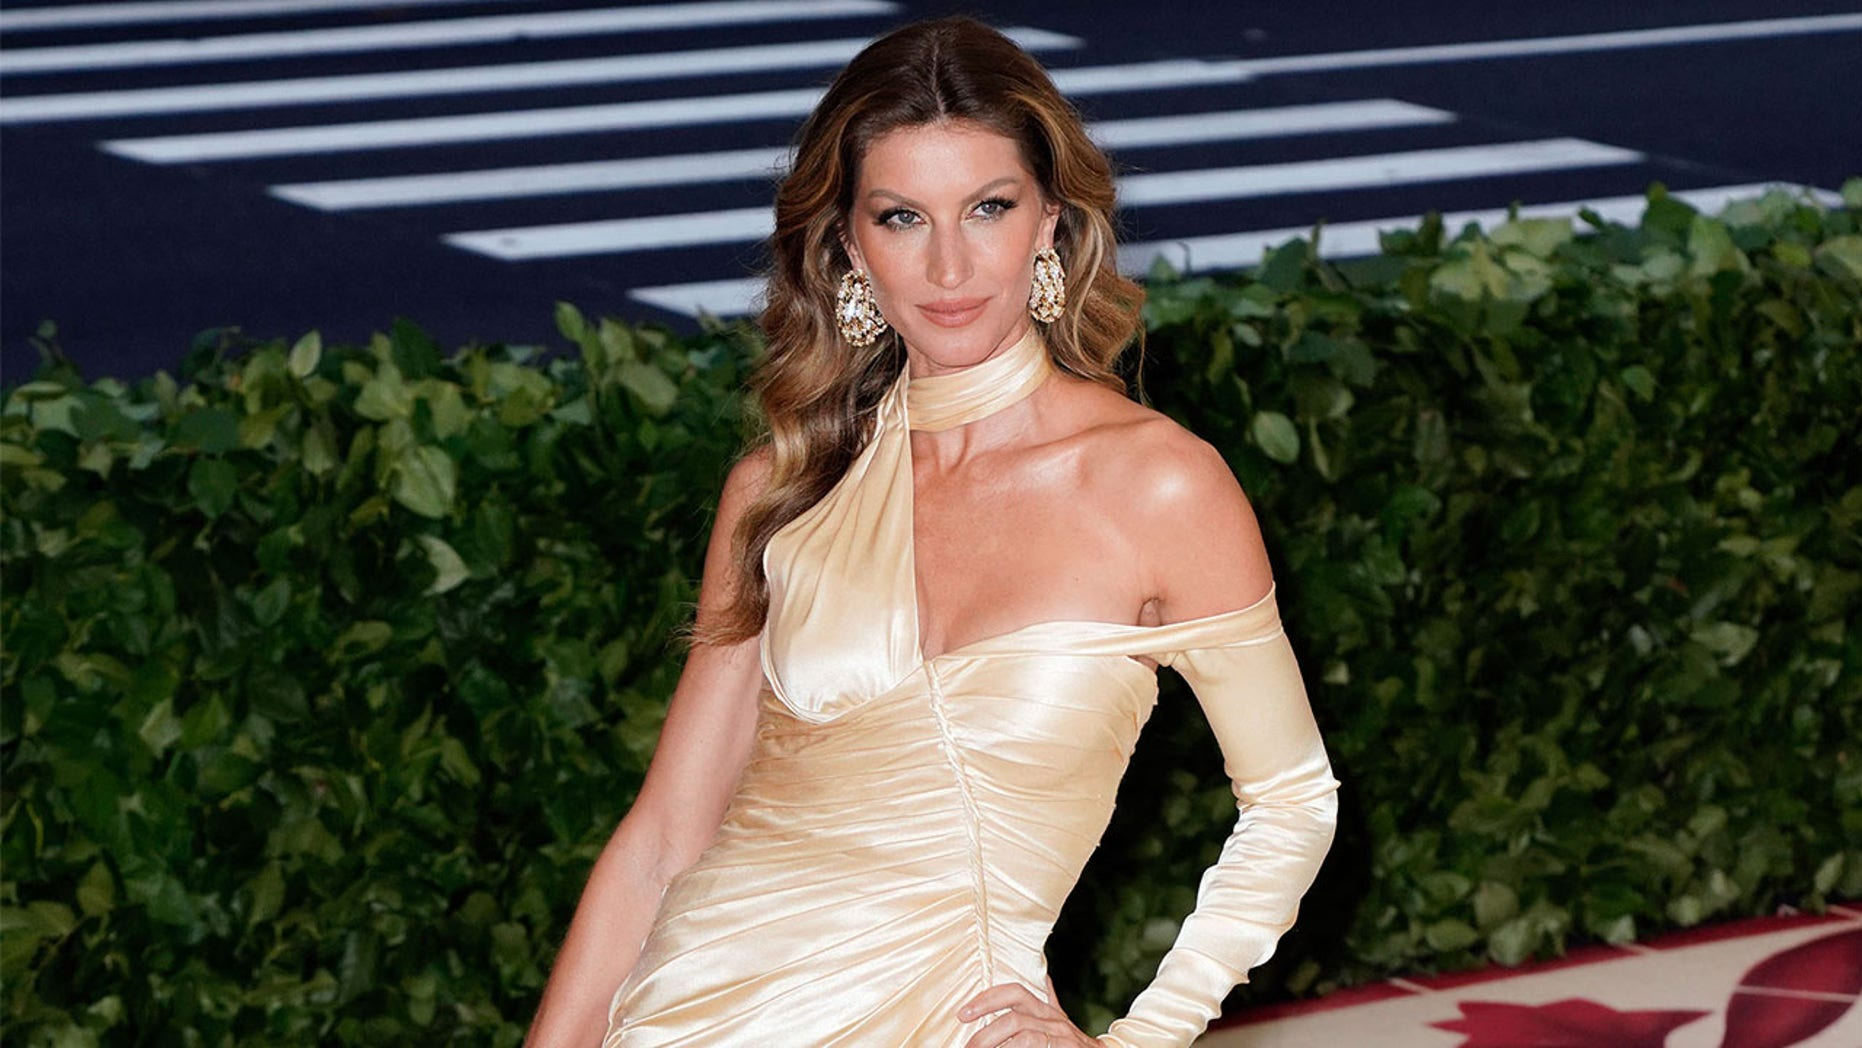 Discussion on this topic: Gisele Bündchen Just Revealed That She Got , gisele-b-ndchen-just-revealed-that-she-got/